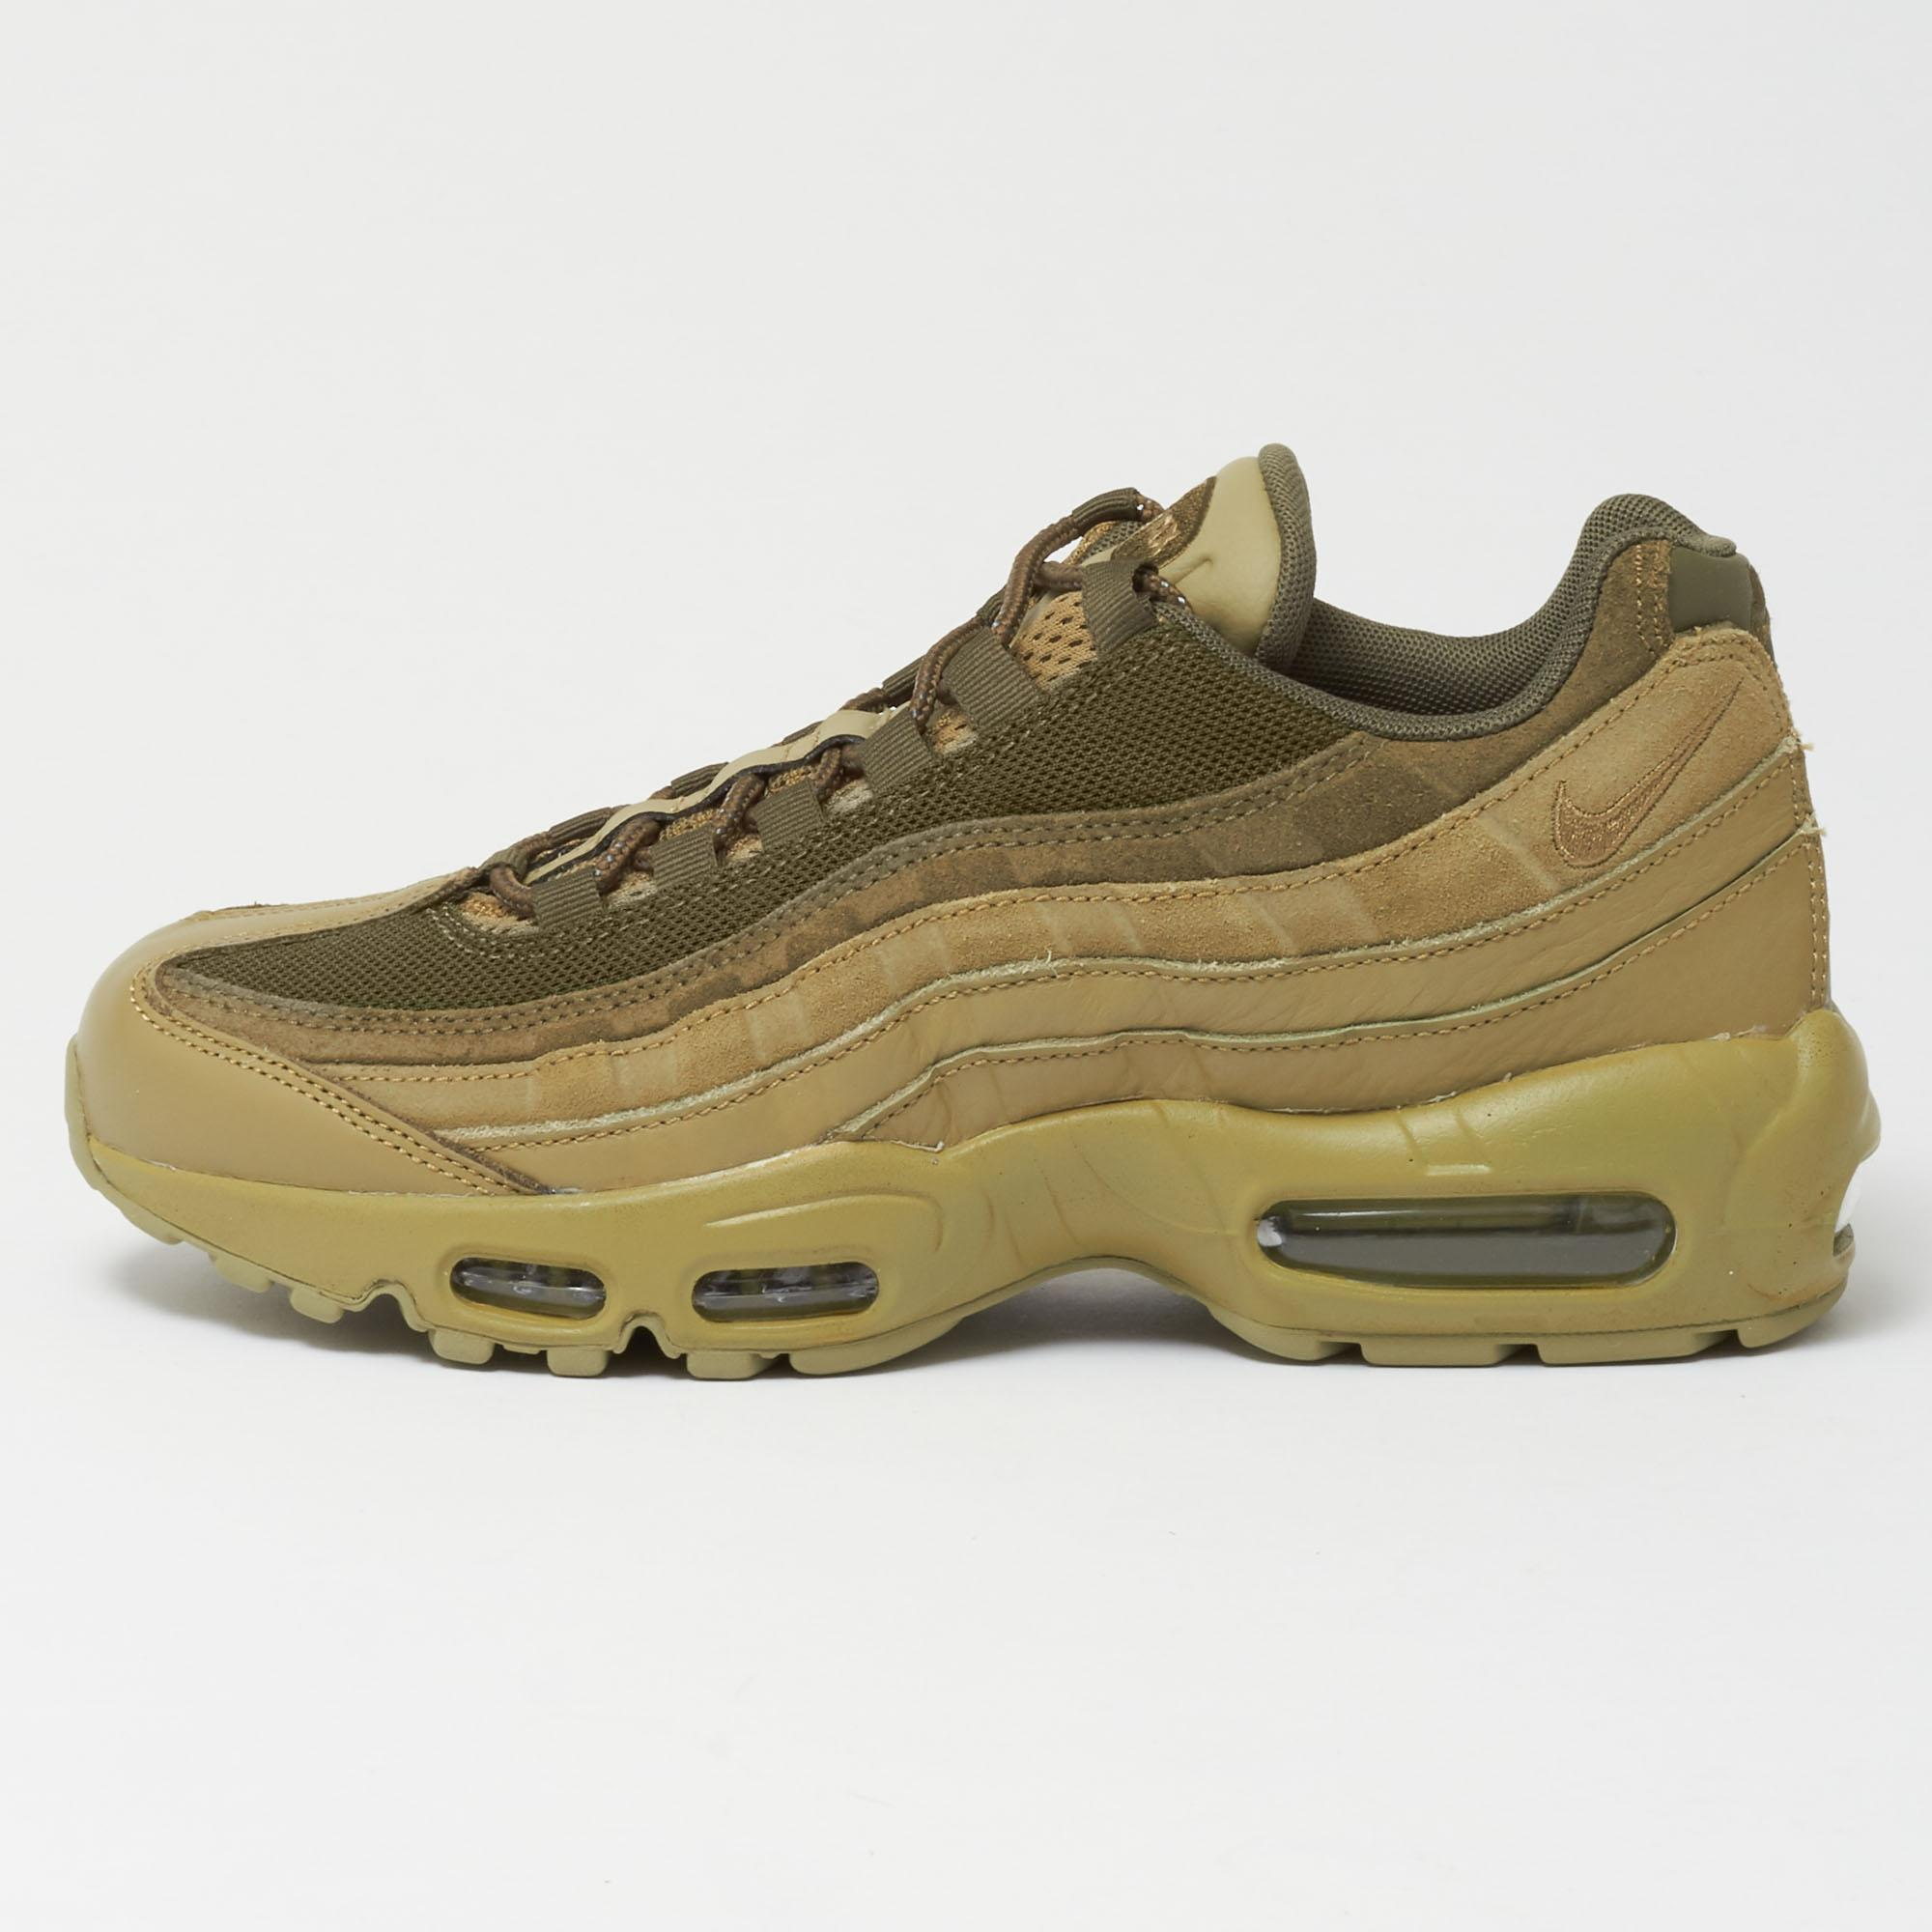 info for b1f69 29691 Lyst - Nike Air Max 95 Prm - Neutral Olive in Green for Men